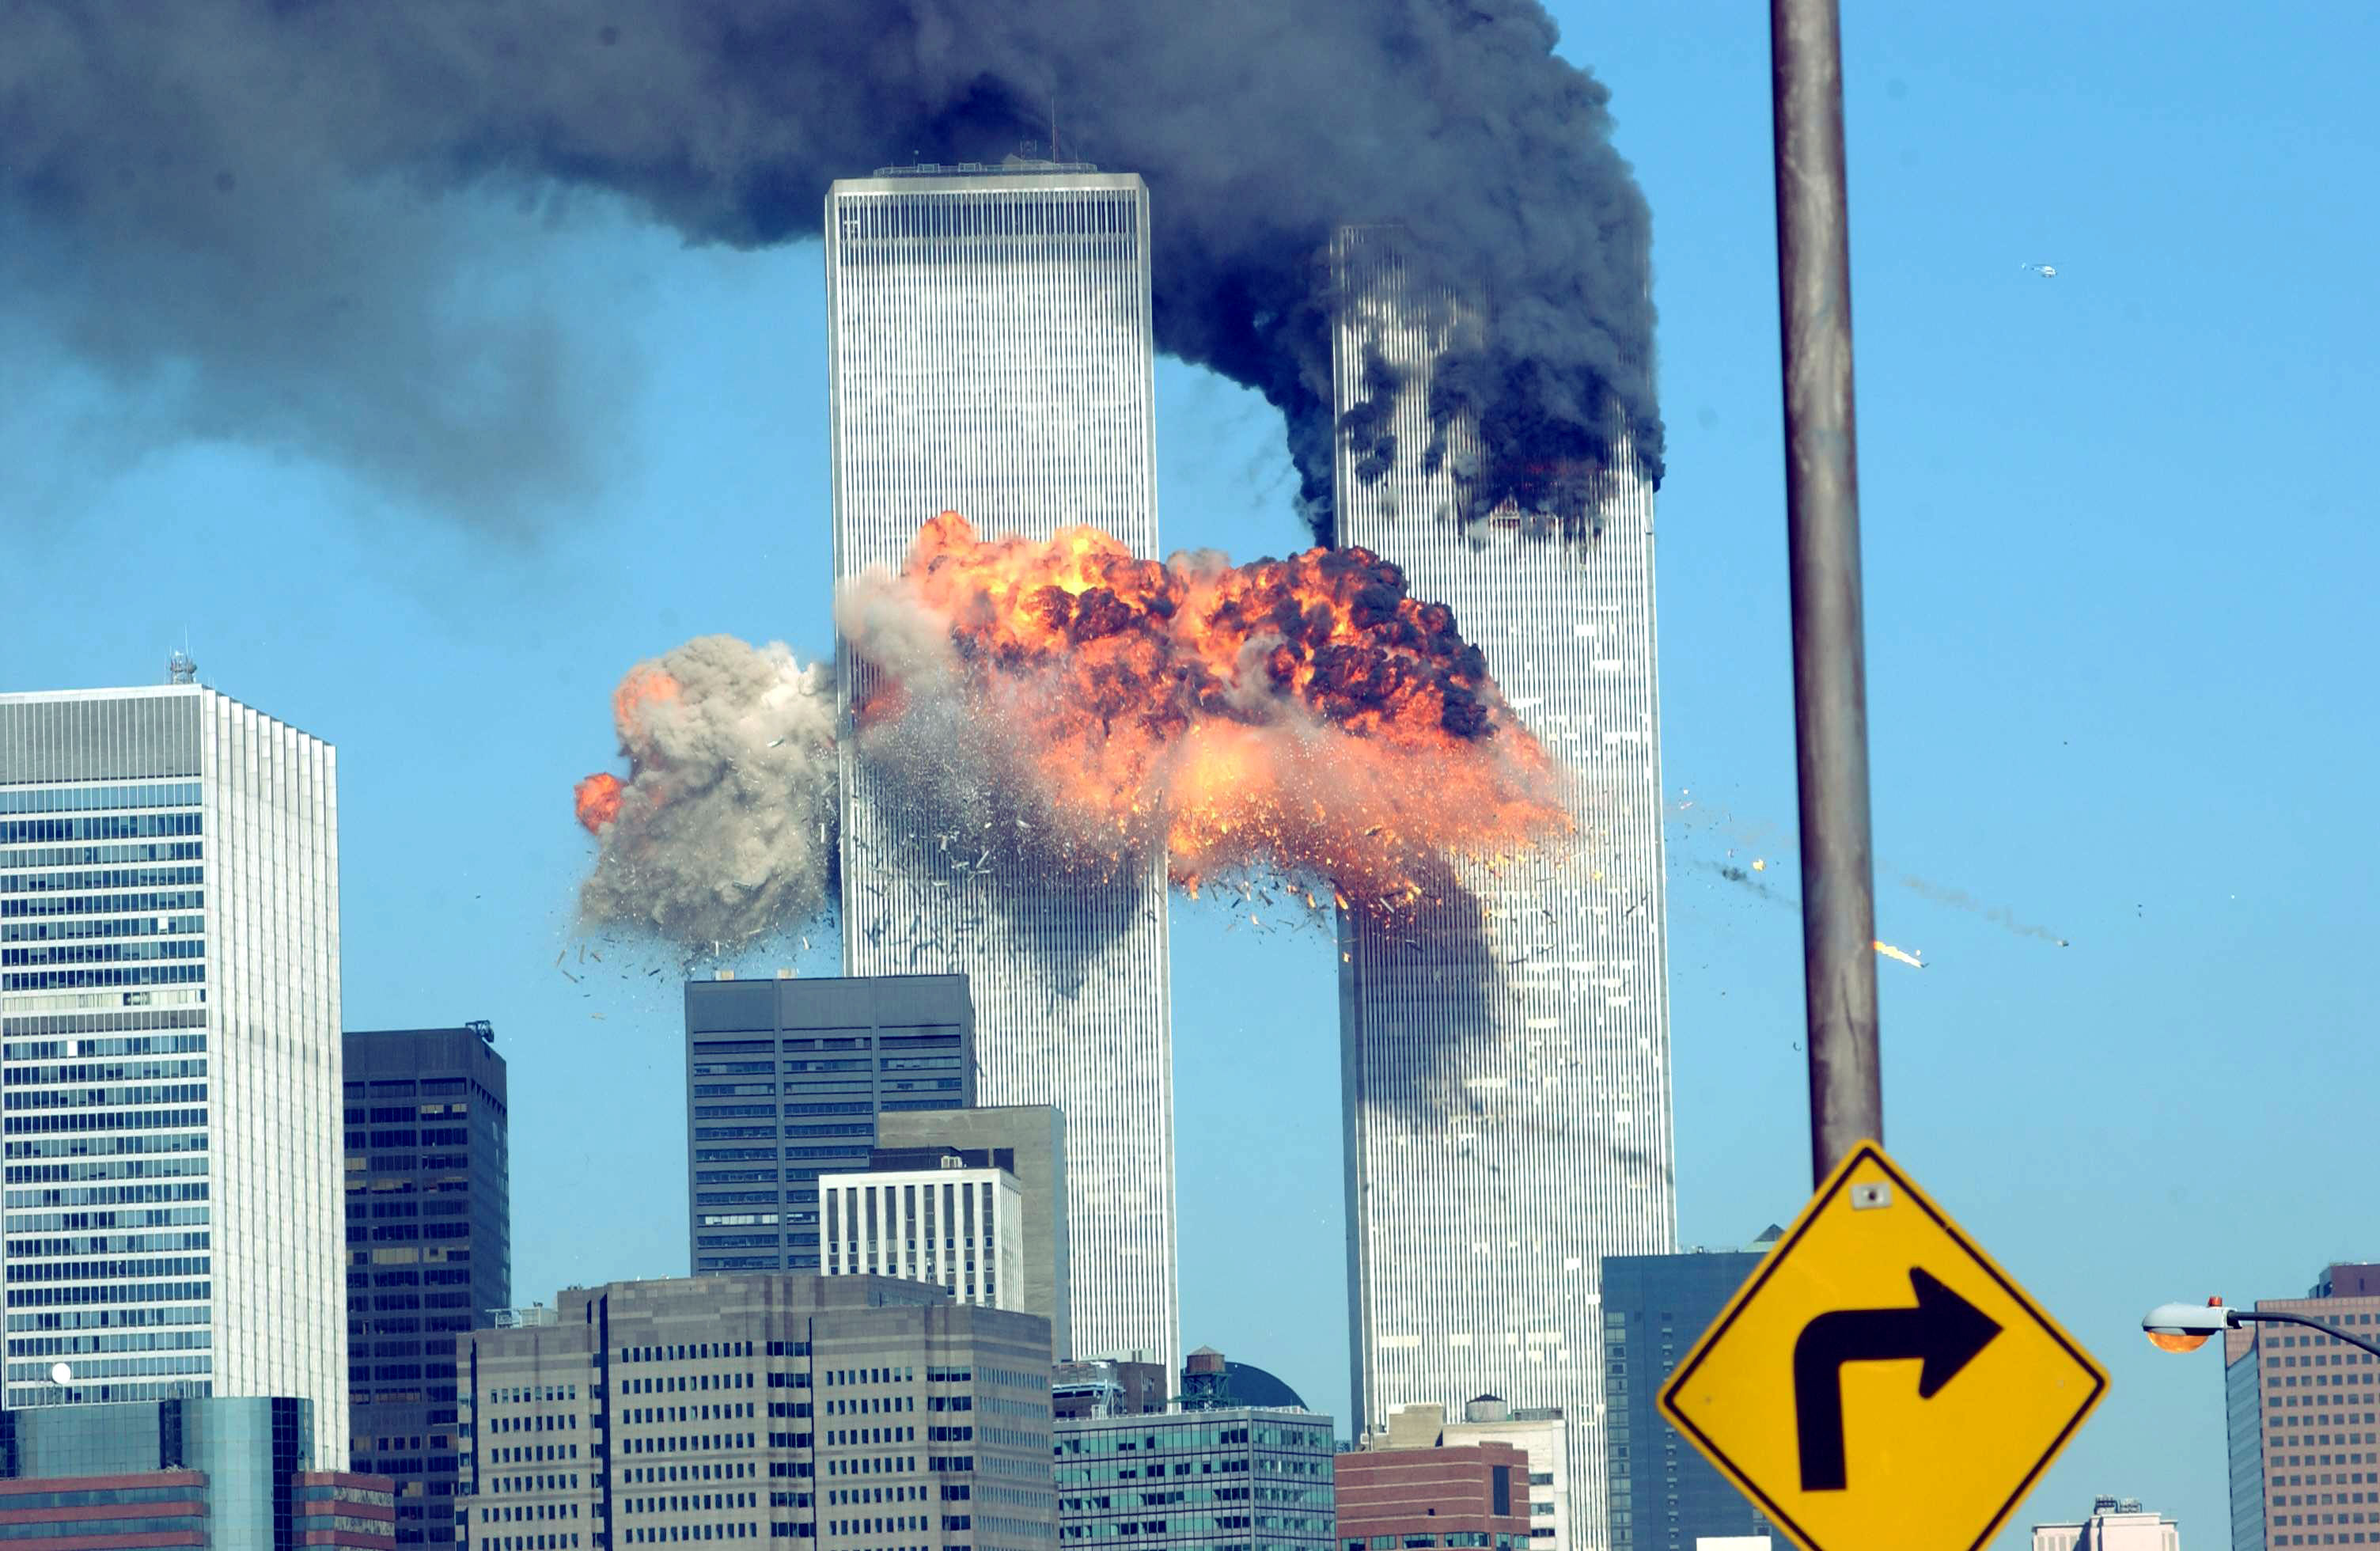 Saudi Government Linked To 9/11 Hijackers In Newly Released U.S. Report GettyImages 1161124 1